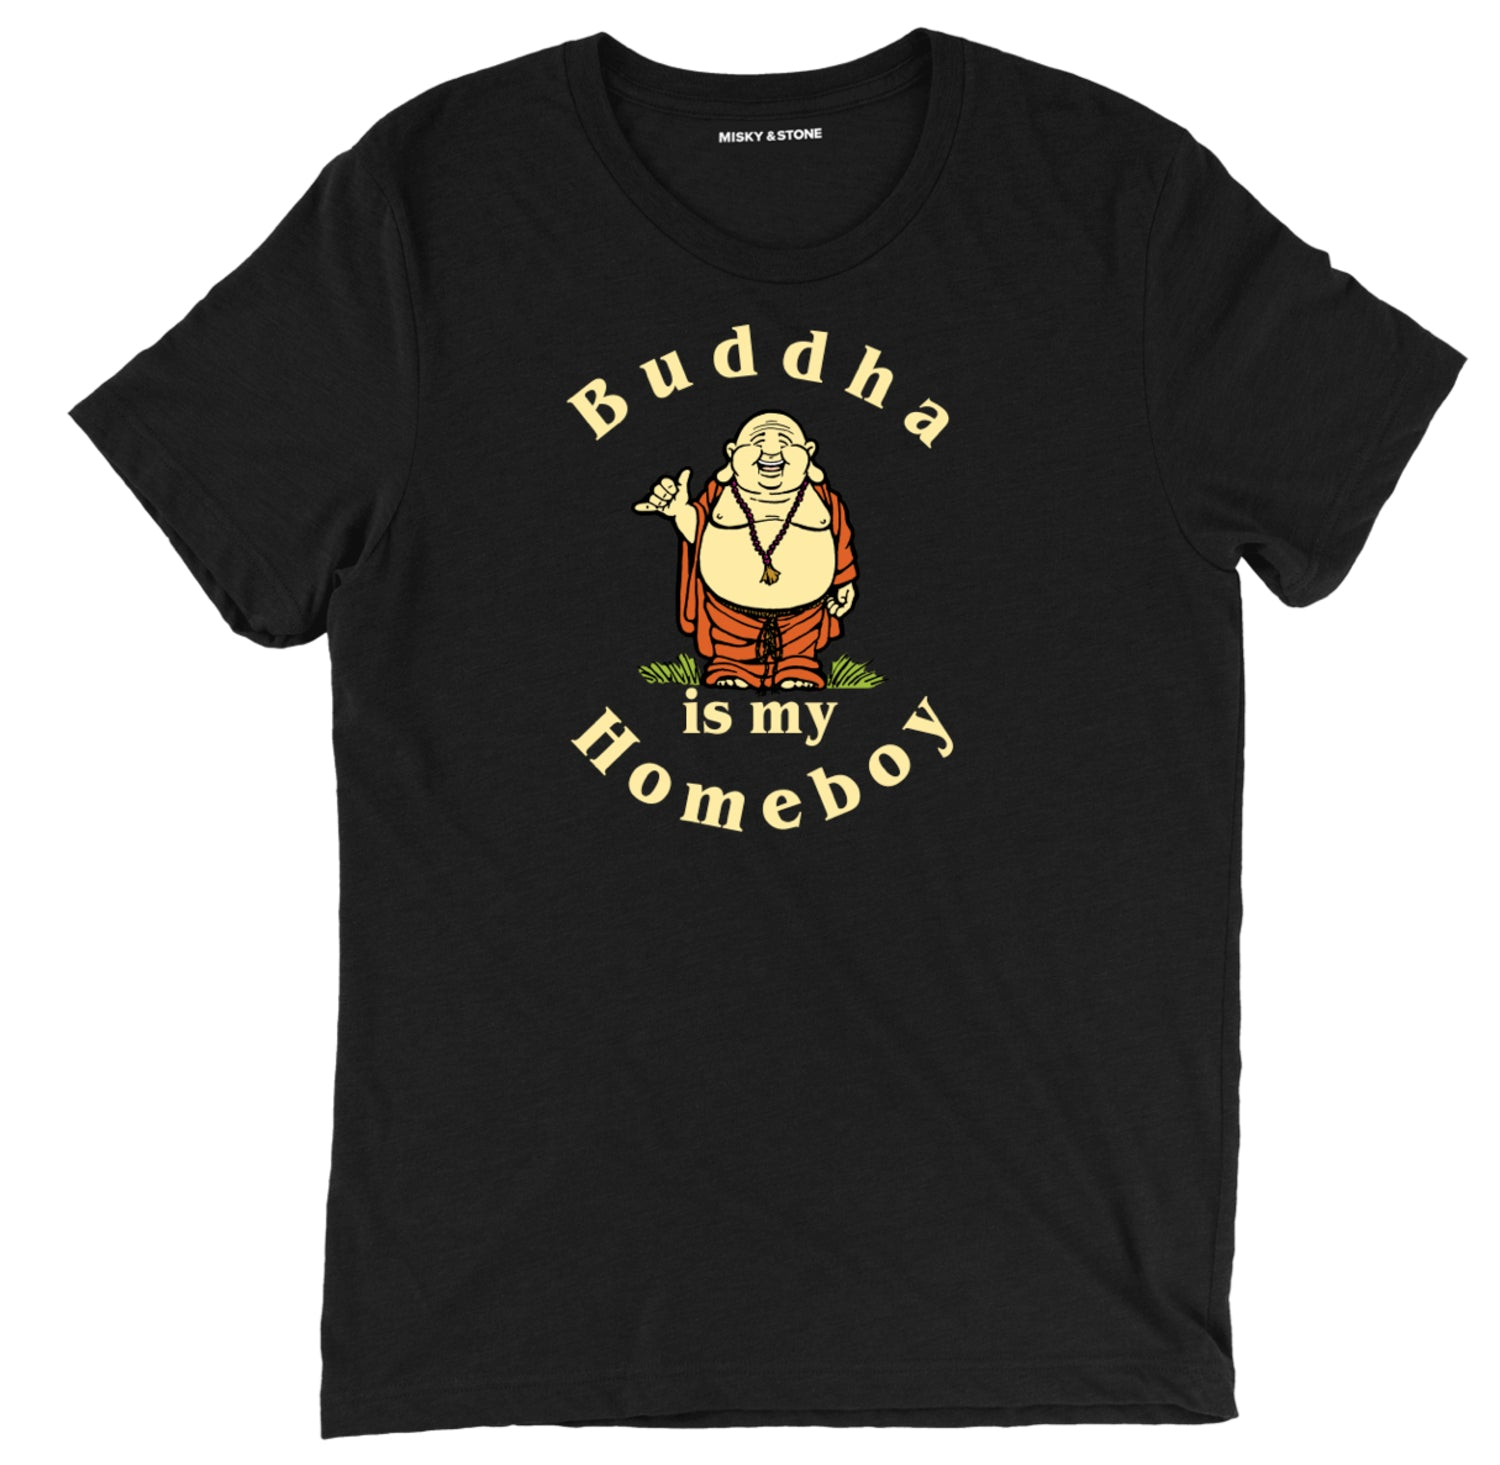 Buddha is my homeboy tee shirt, buddha is my homeboy apparel, buddha is my homeboy  merch, buddha is my homeboy clothing, funny buddha is my homeboy  tee shirt